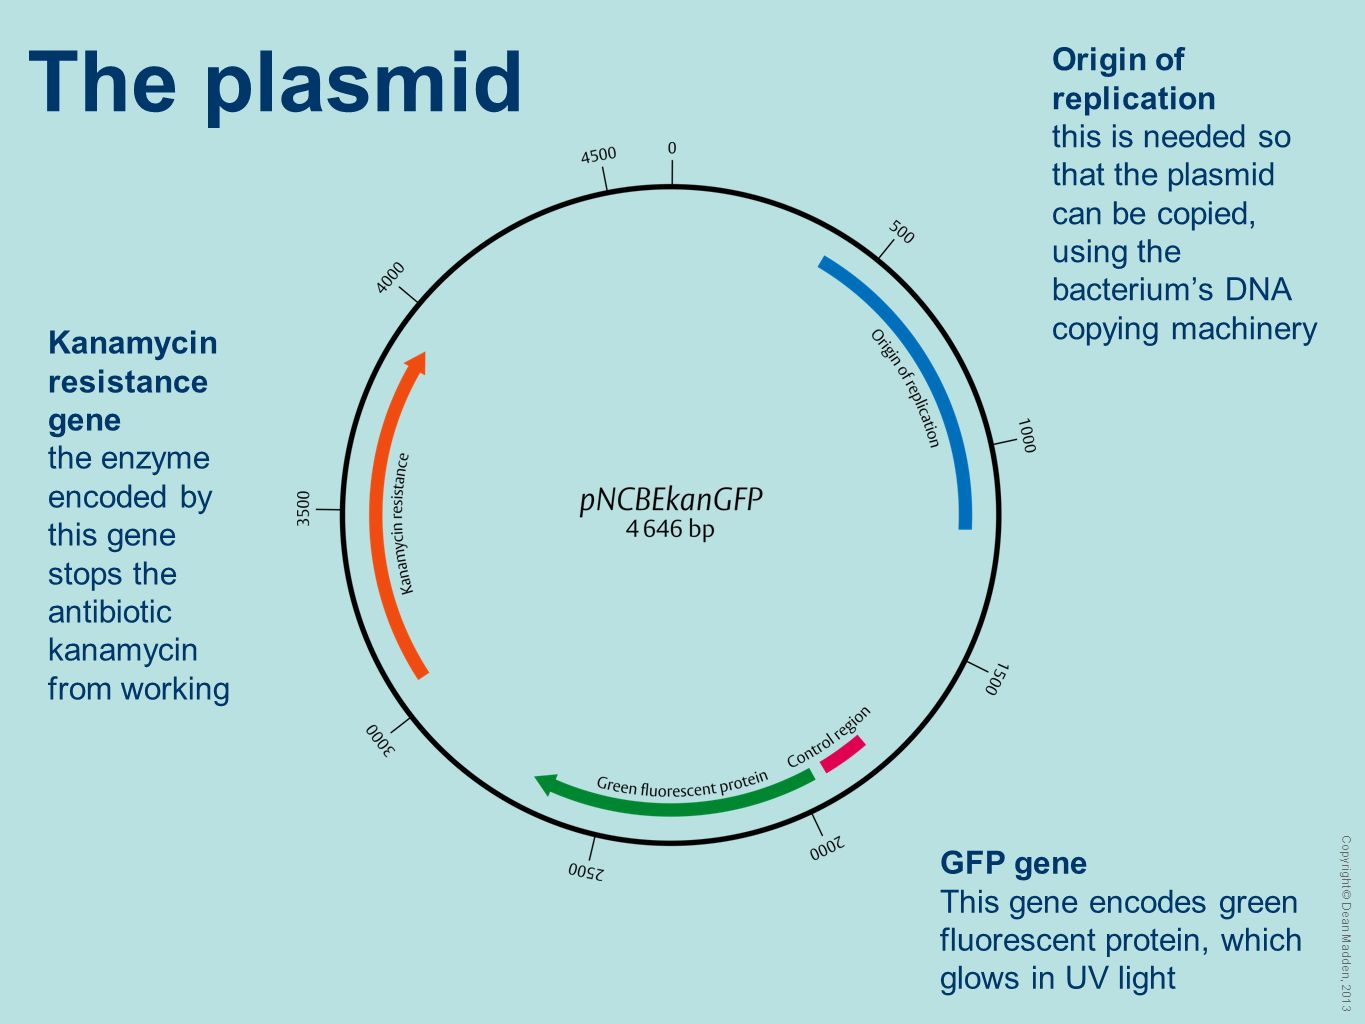 The plasmid Origin of replication this is needed so that the plasmid can be copied, using the bacterium's DNA copying machinery.